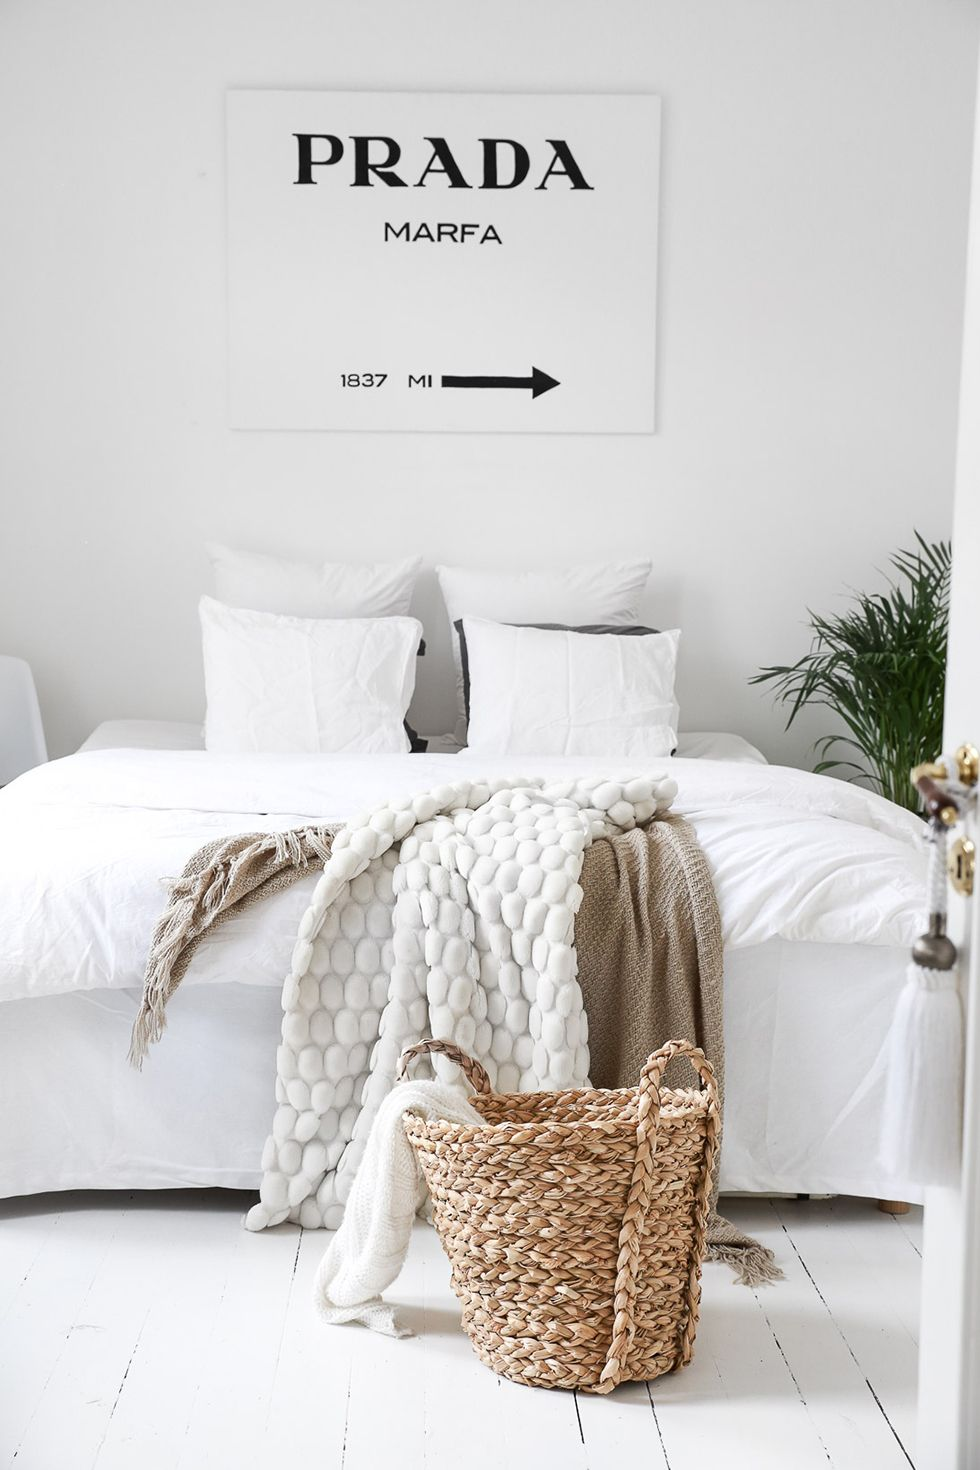 All White Room 33 all-white room ideas for decor minimalists | white rooms, room